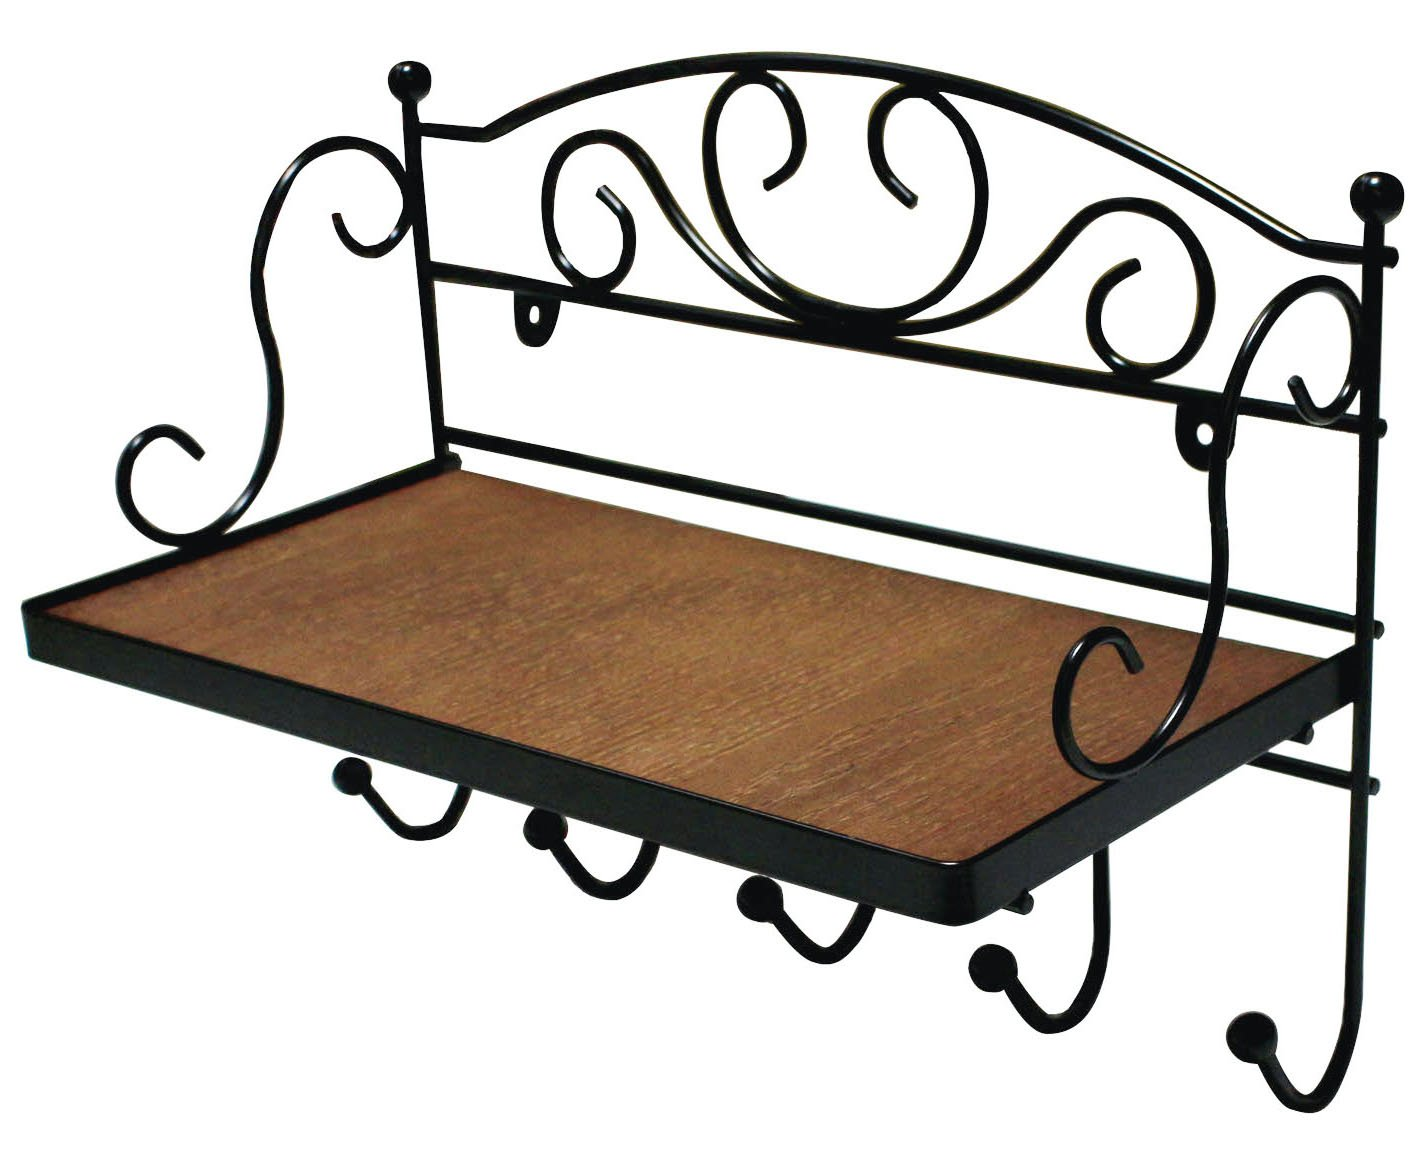 JustNile Antique Wall Mounted Solid Wooden Shelf with 5 Hanging Hooks; Classic Style Shelf and Rack; Easy to Install, for Mugs, Keys, Coats, Scarfs; Rustic Iron Frame Design by JustNile